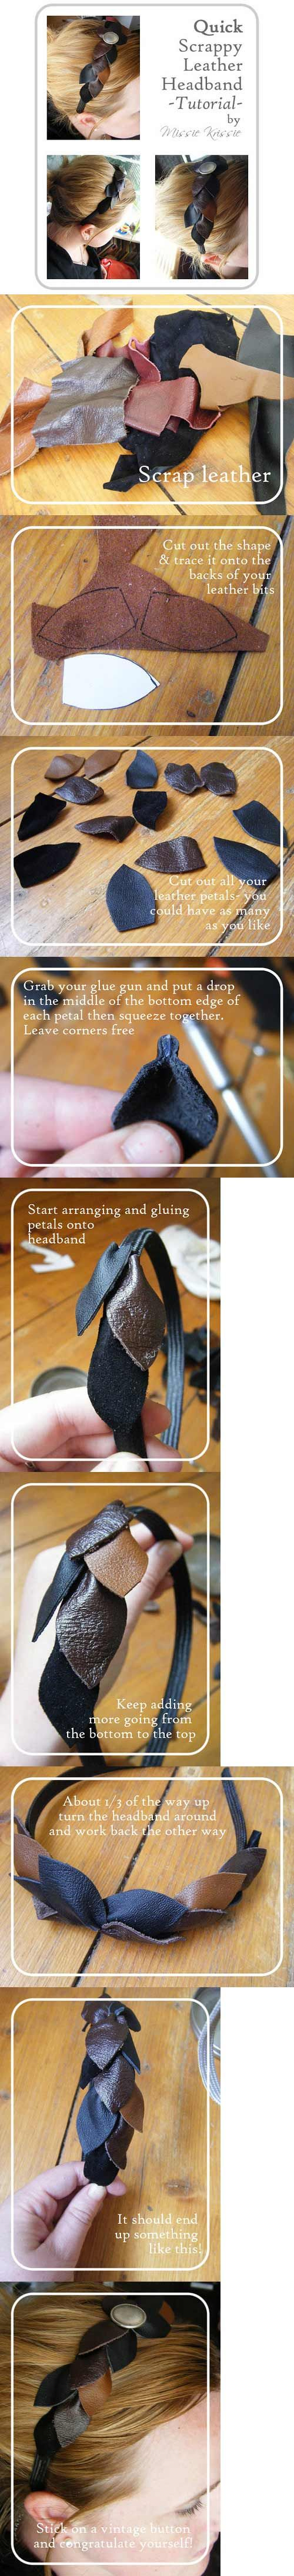 DIY leather head band! I would make one from old leather bags found at a second hand store.